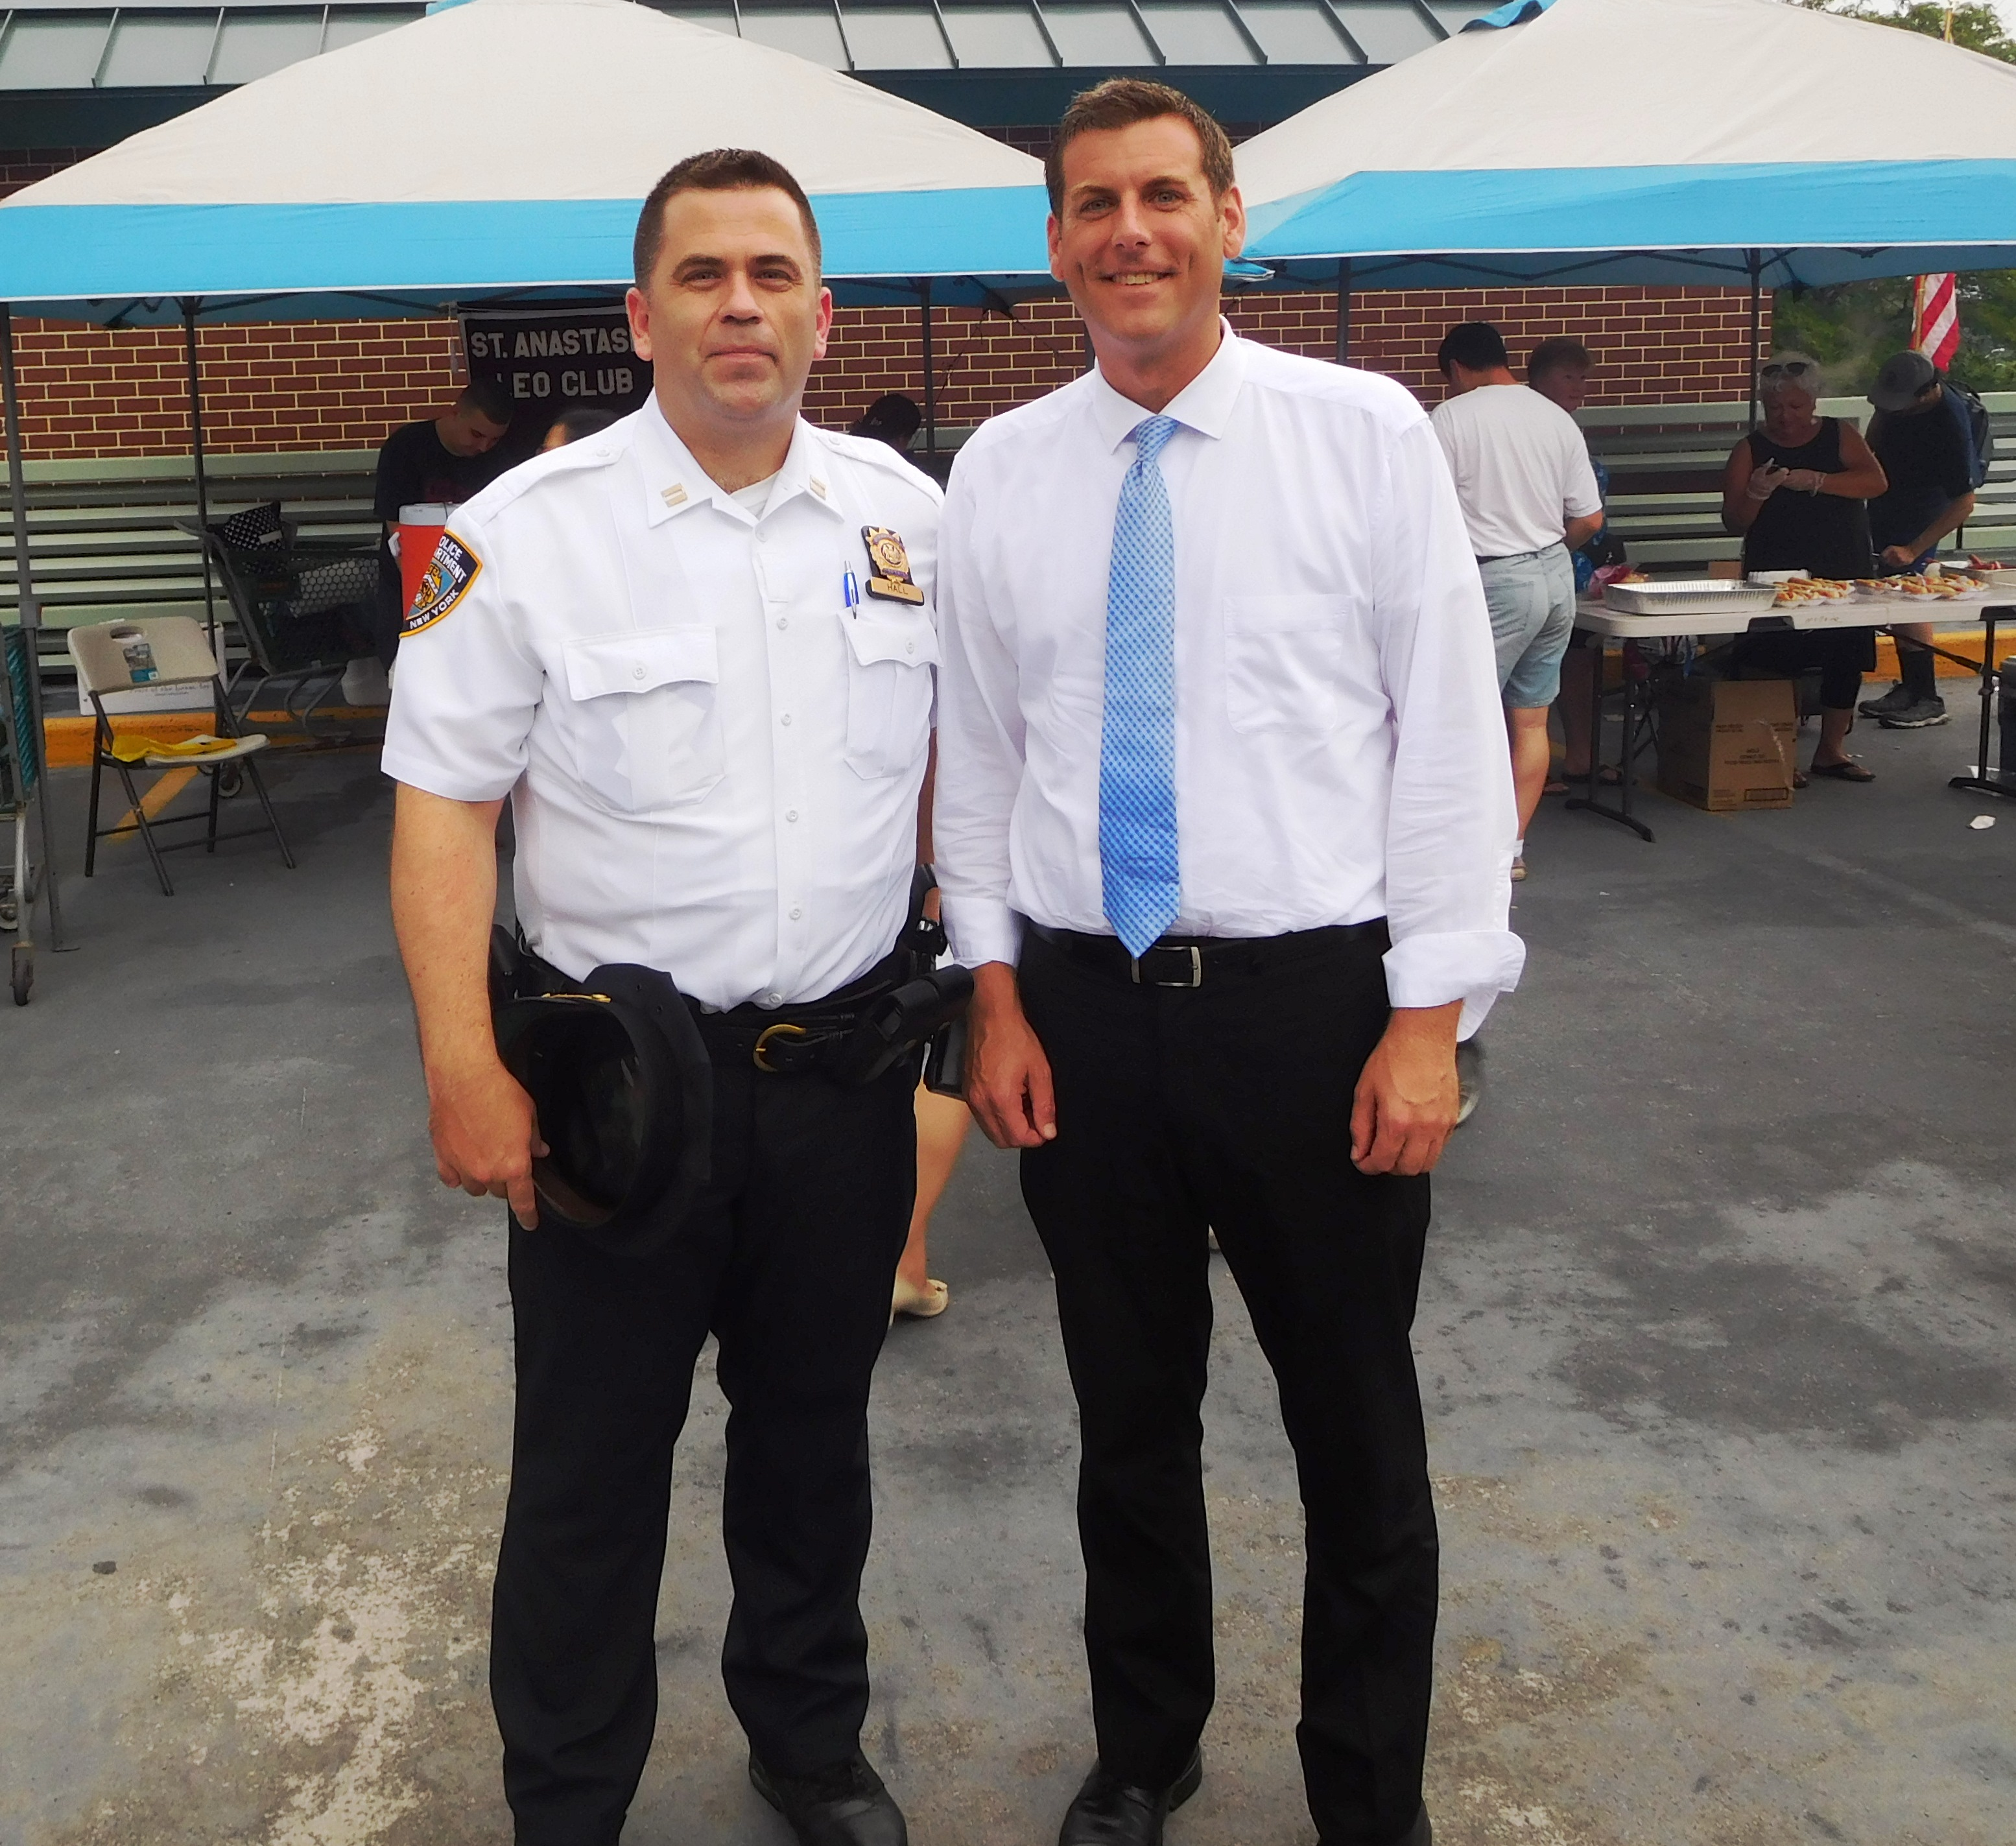 On August 7, 2018, Assemblyman Braunstein attended the 111th Precinct&rsquo;s National Night Out event in Douglaston.<br /><br />&nbsp;